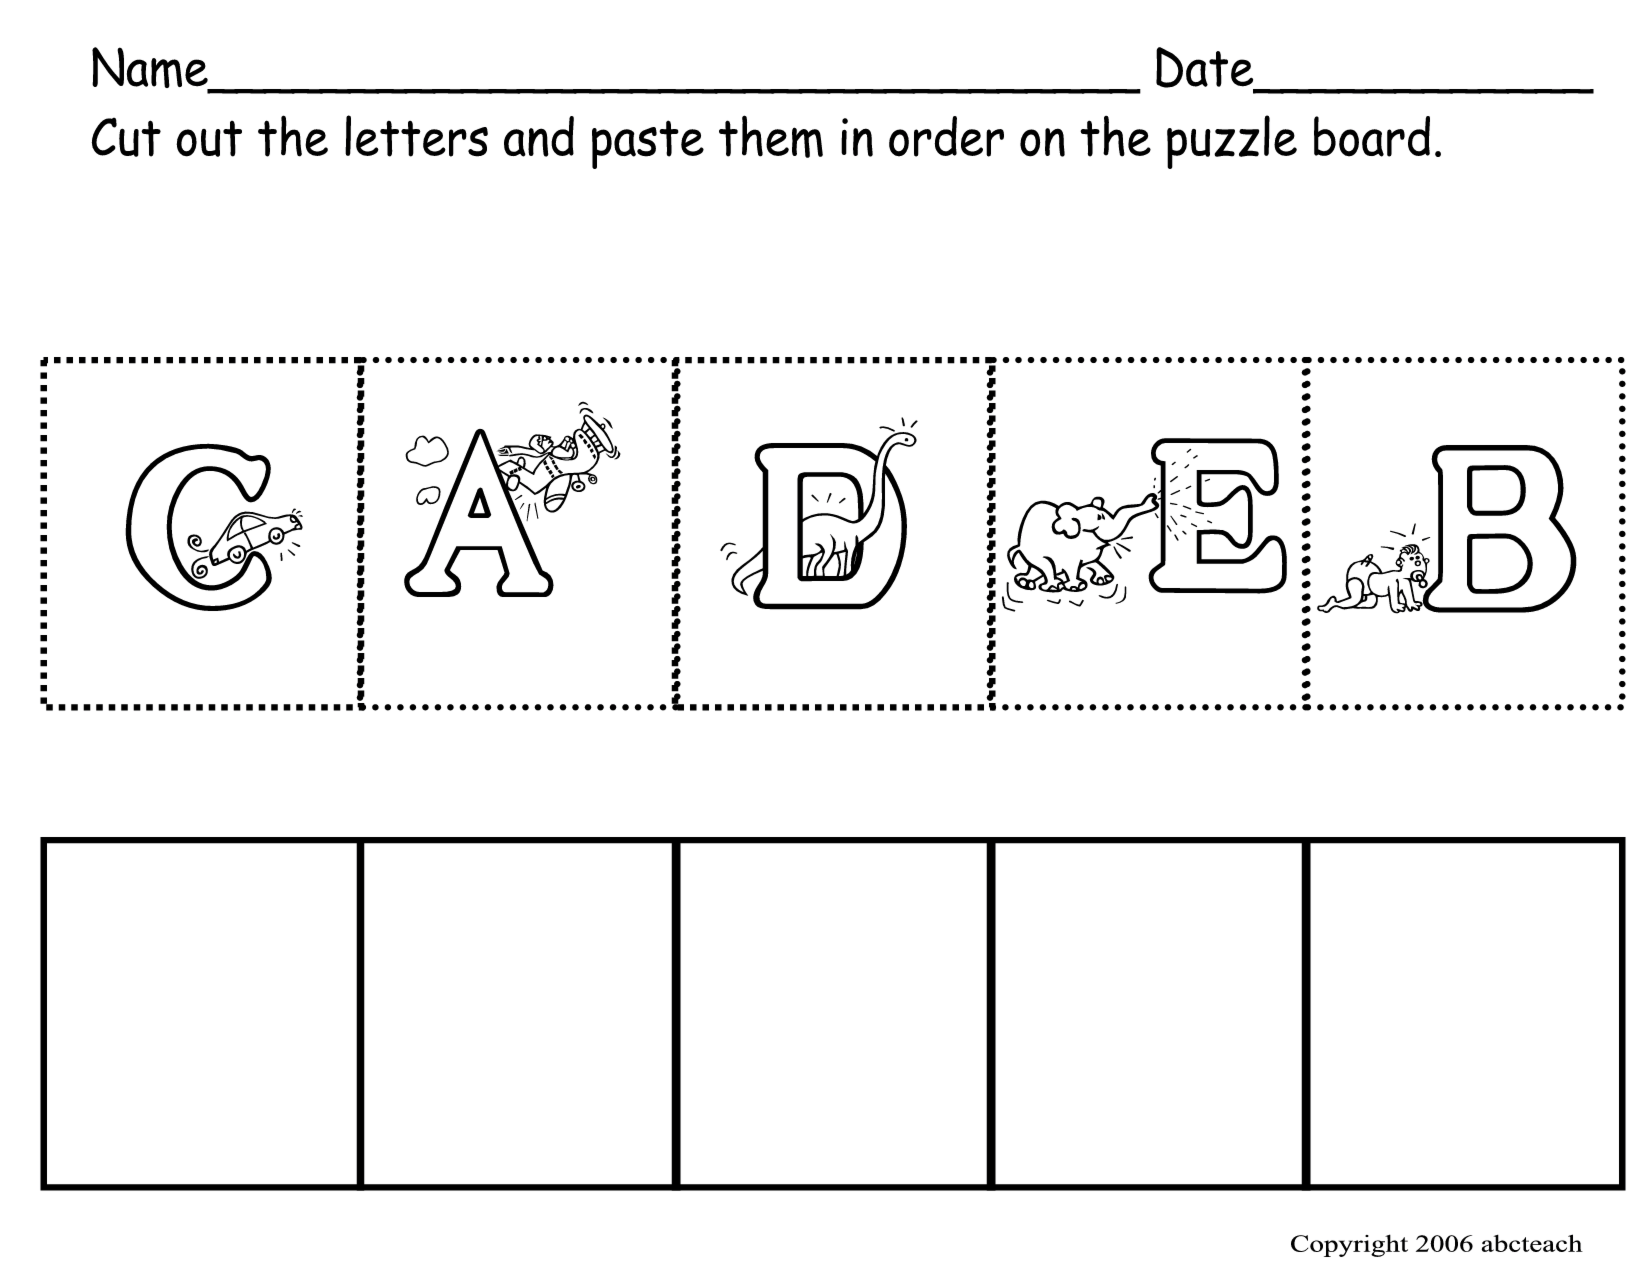 Preschool Abc Worksheets Kiduls Printable – Letter a Worksheets for Preschool